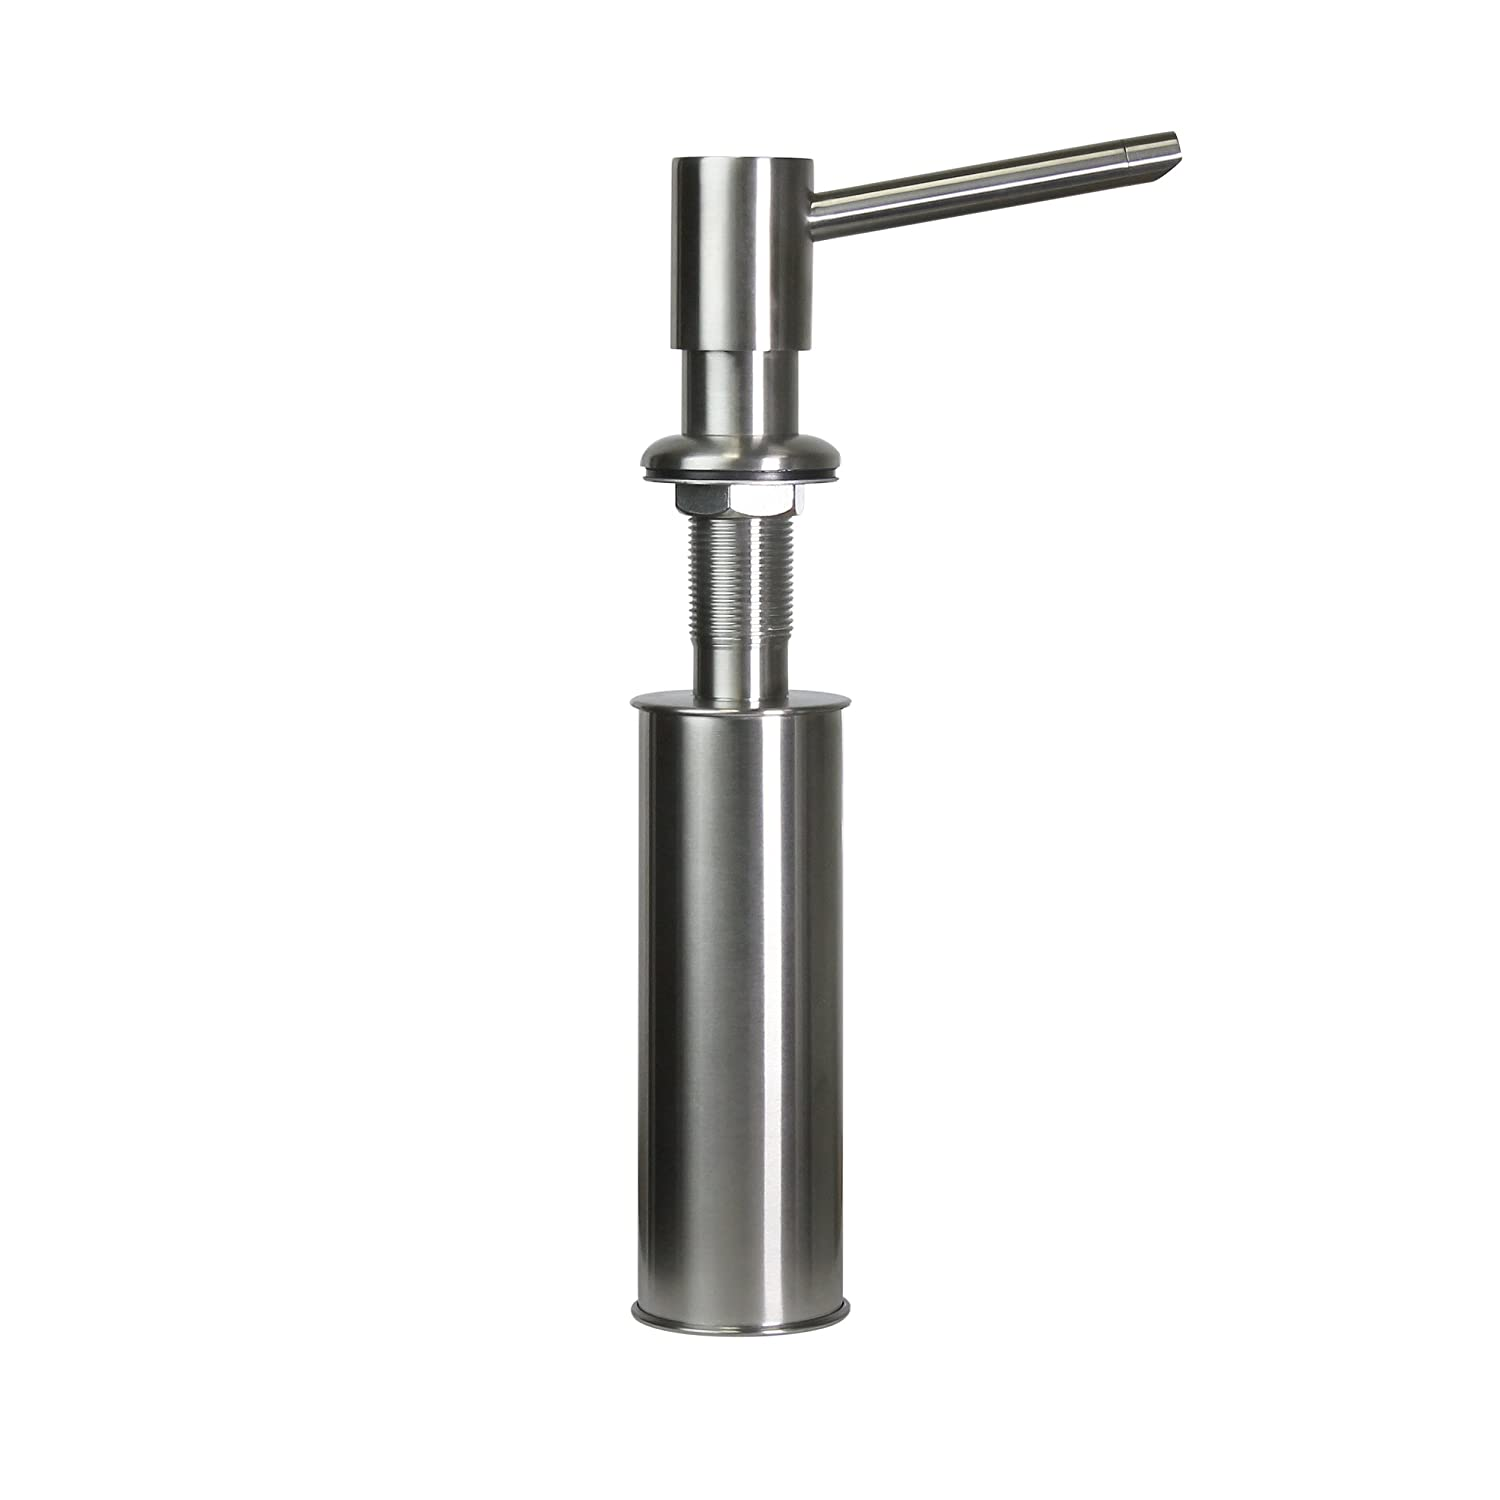 Amazon.com: Stainless-Steel - Bathroom Sinks / Bathroom Fixtures